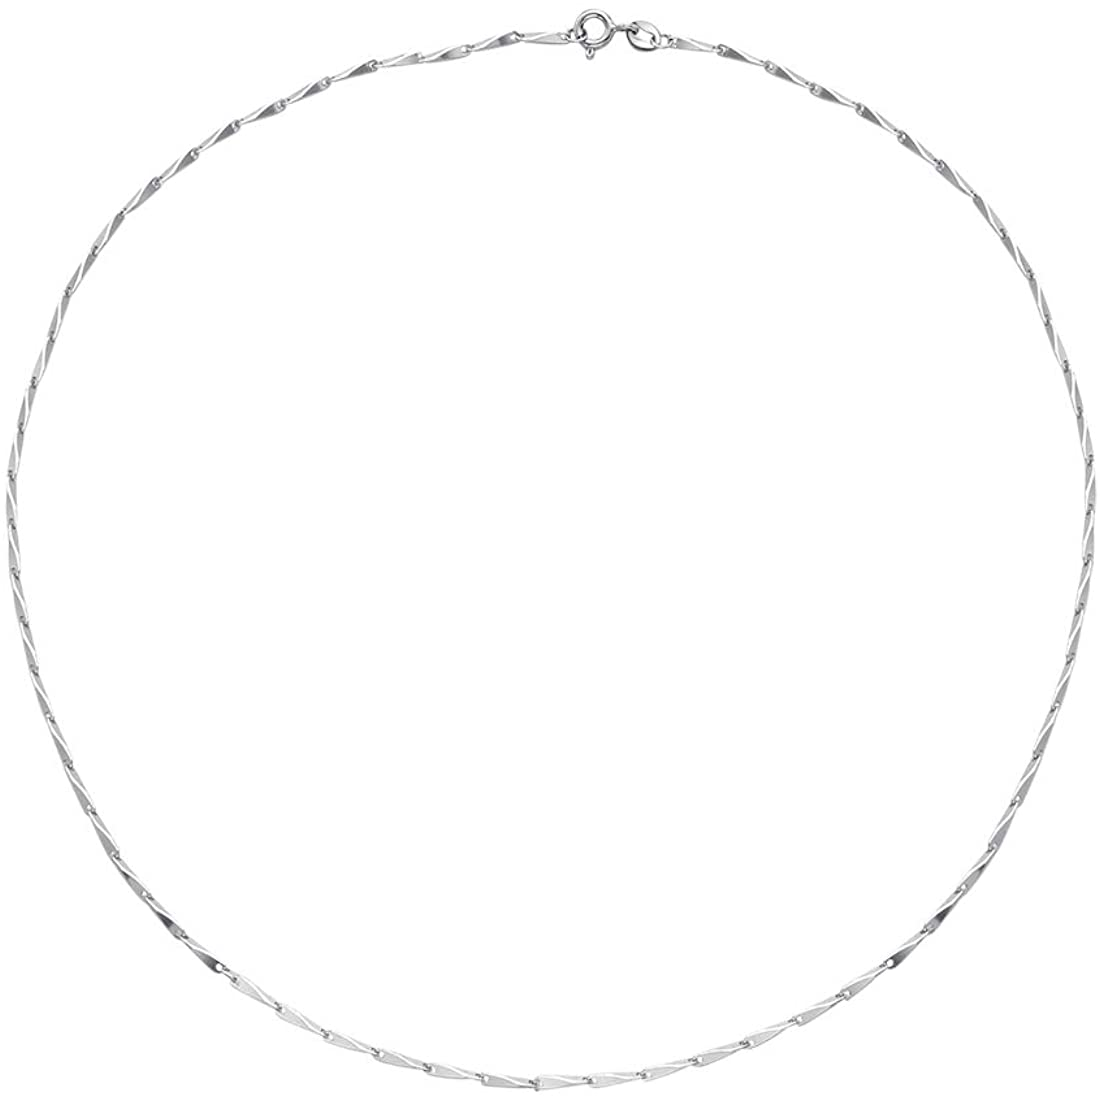 SA SILVERAGE Jewelry 925 Sterling Silver Box Chain Necklace Accessory Chain Matching Necklace, 16